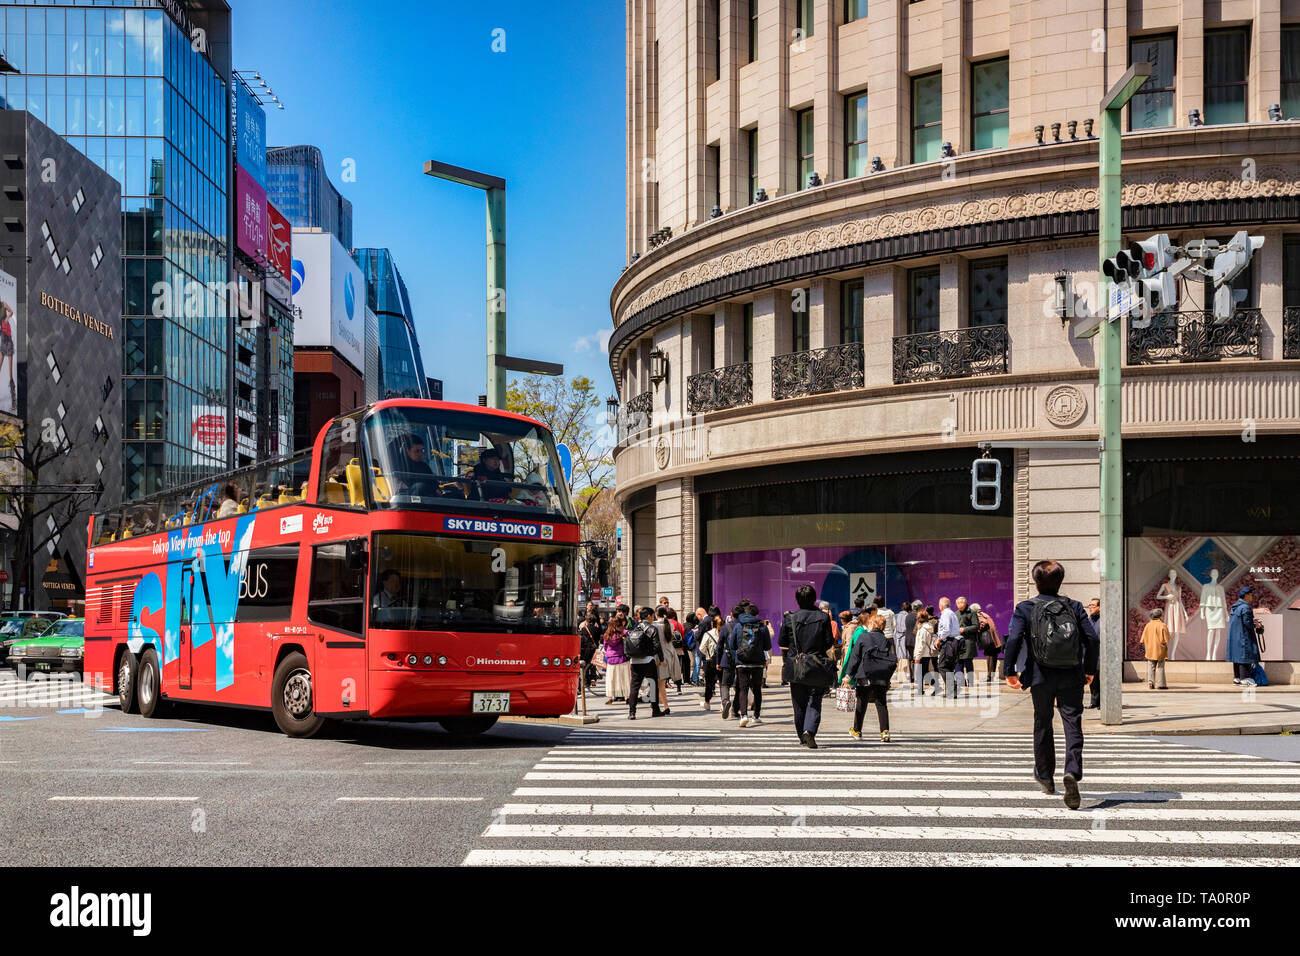 3 April 2019: Tokyo, Japan - Sky Bus Tokyo, a red open top double decker tour bus, sightseeing in the Ginza districtm stopped at a road crossing. Stock Photo